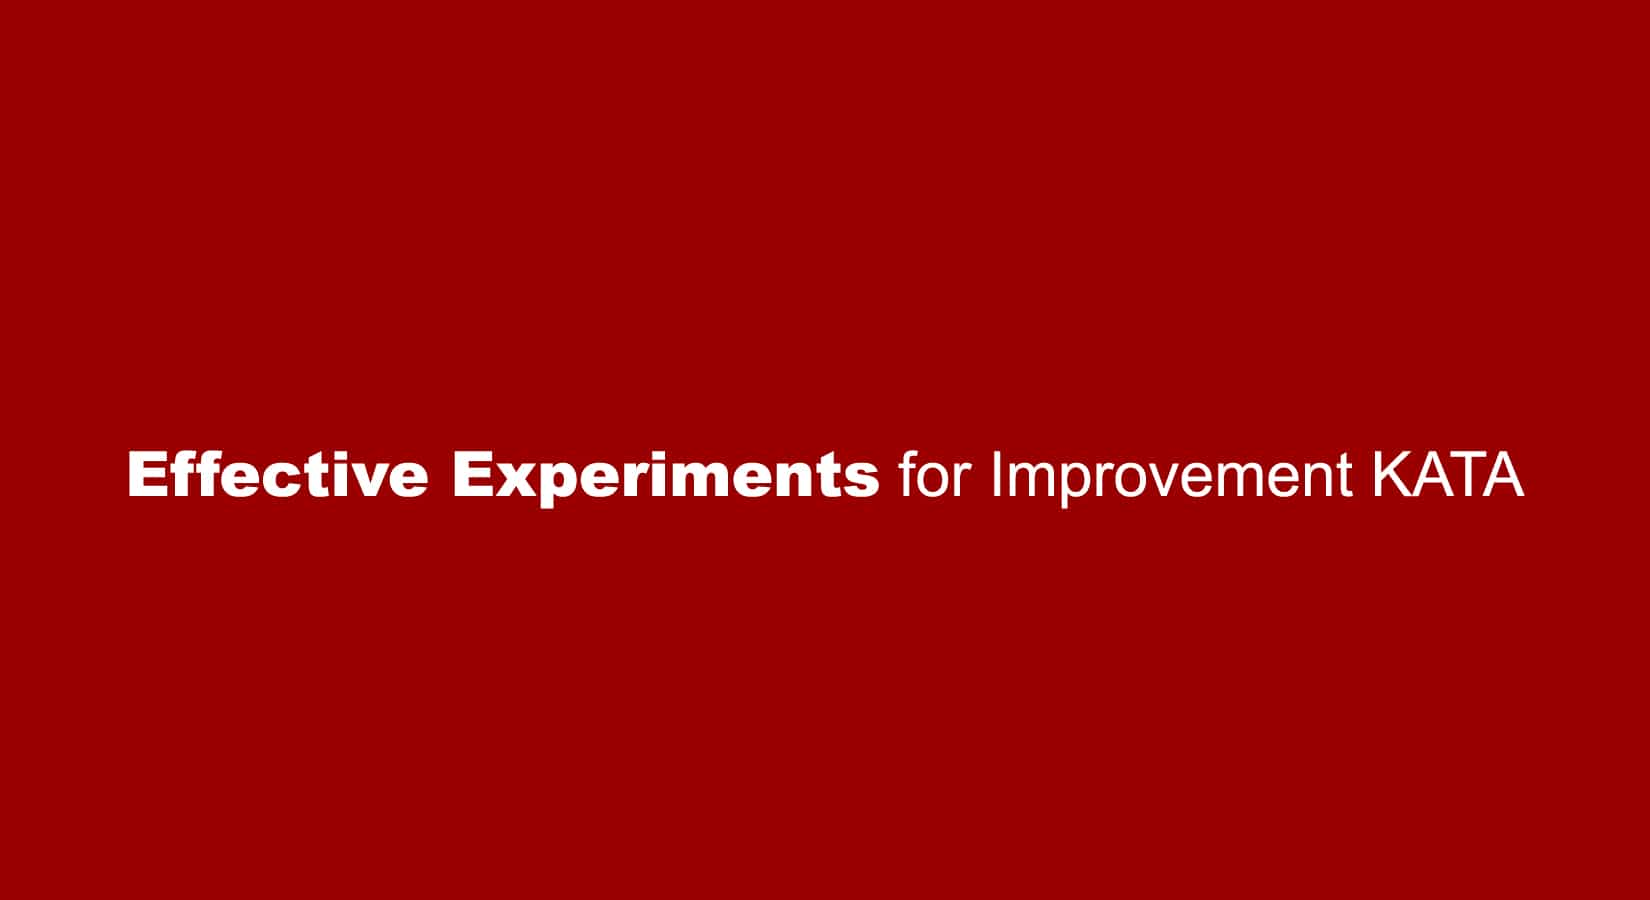 Experimenting for Continuous Improvement